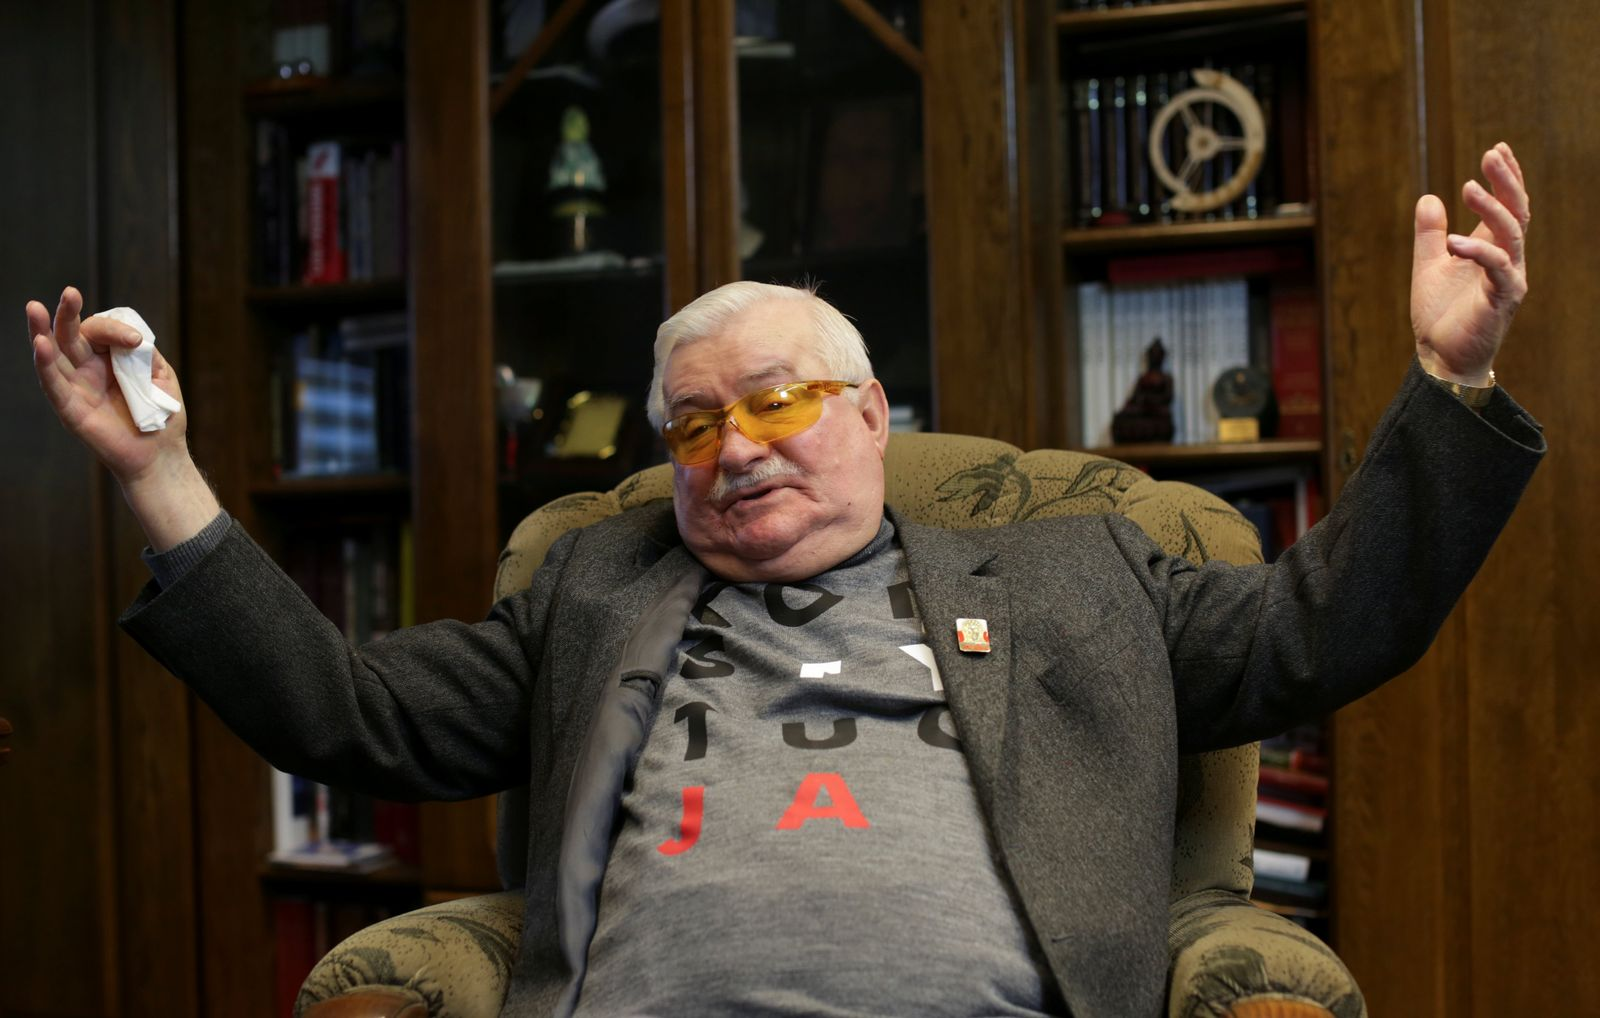 Former Polish President Lech Walesa gestures during an interview with Reuters in Gdansk